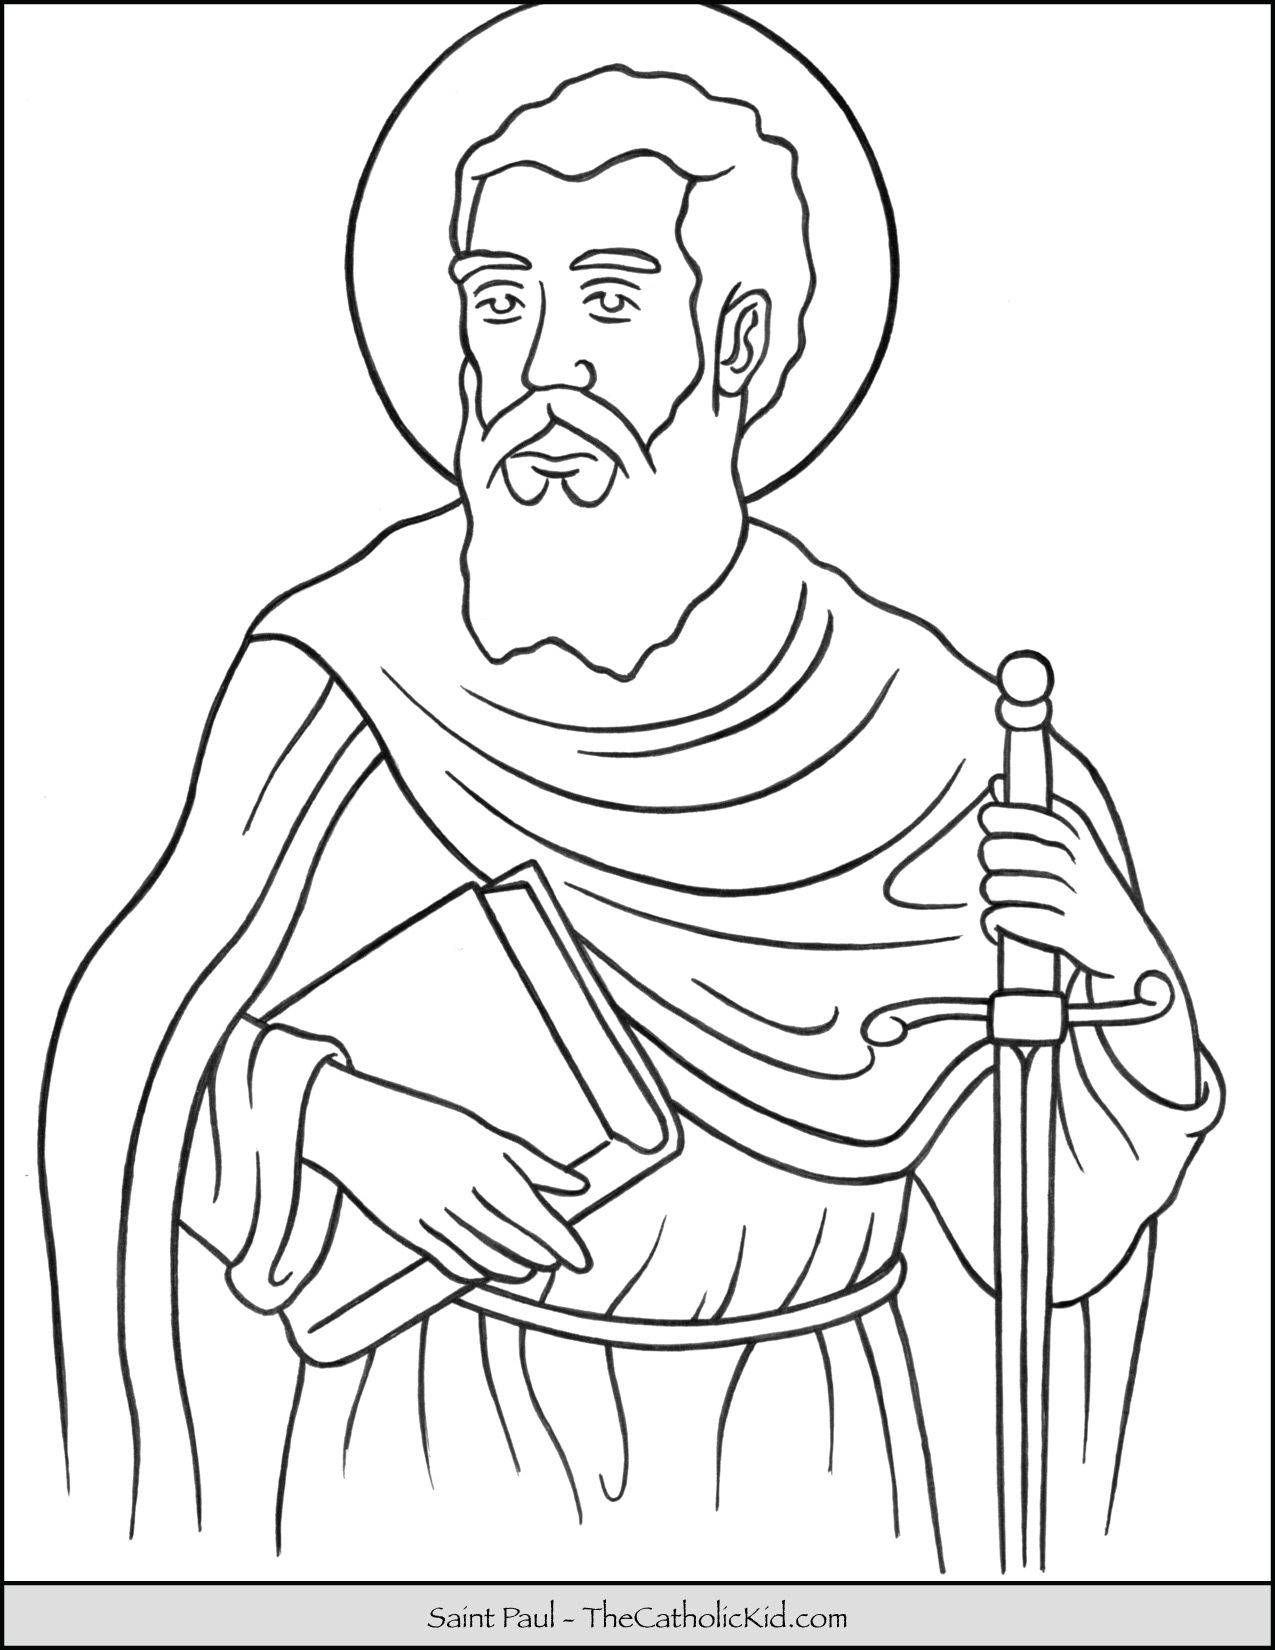 Saint Paul Coloring Page Thecatholickid Com Coloring Pages